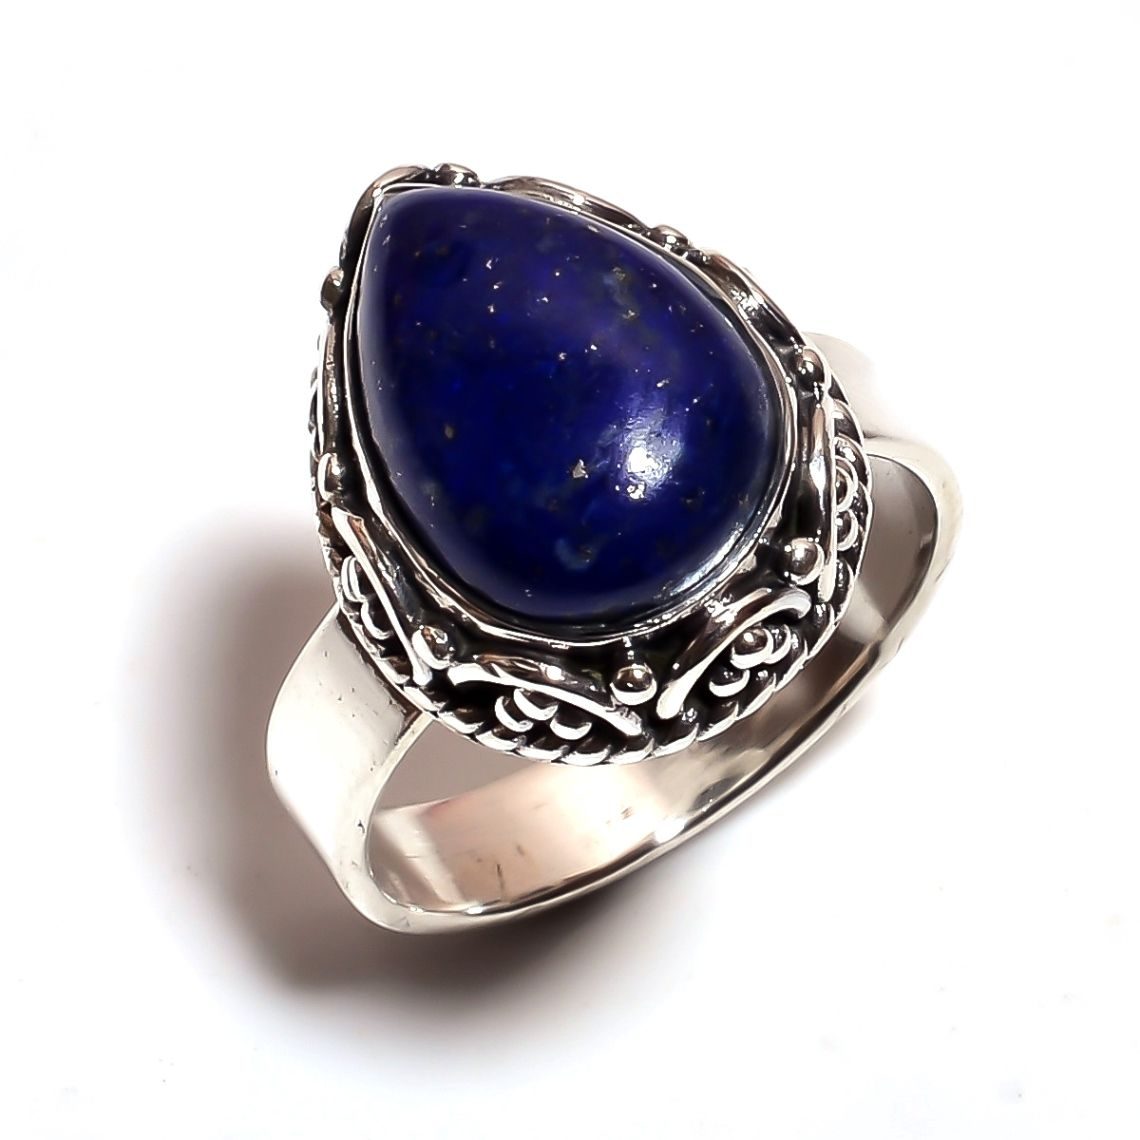 Lapis Gemstone 925 Sterling Silver Ring Size 7.75